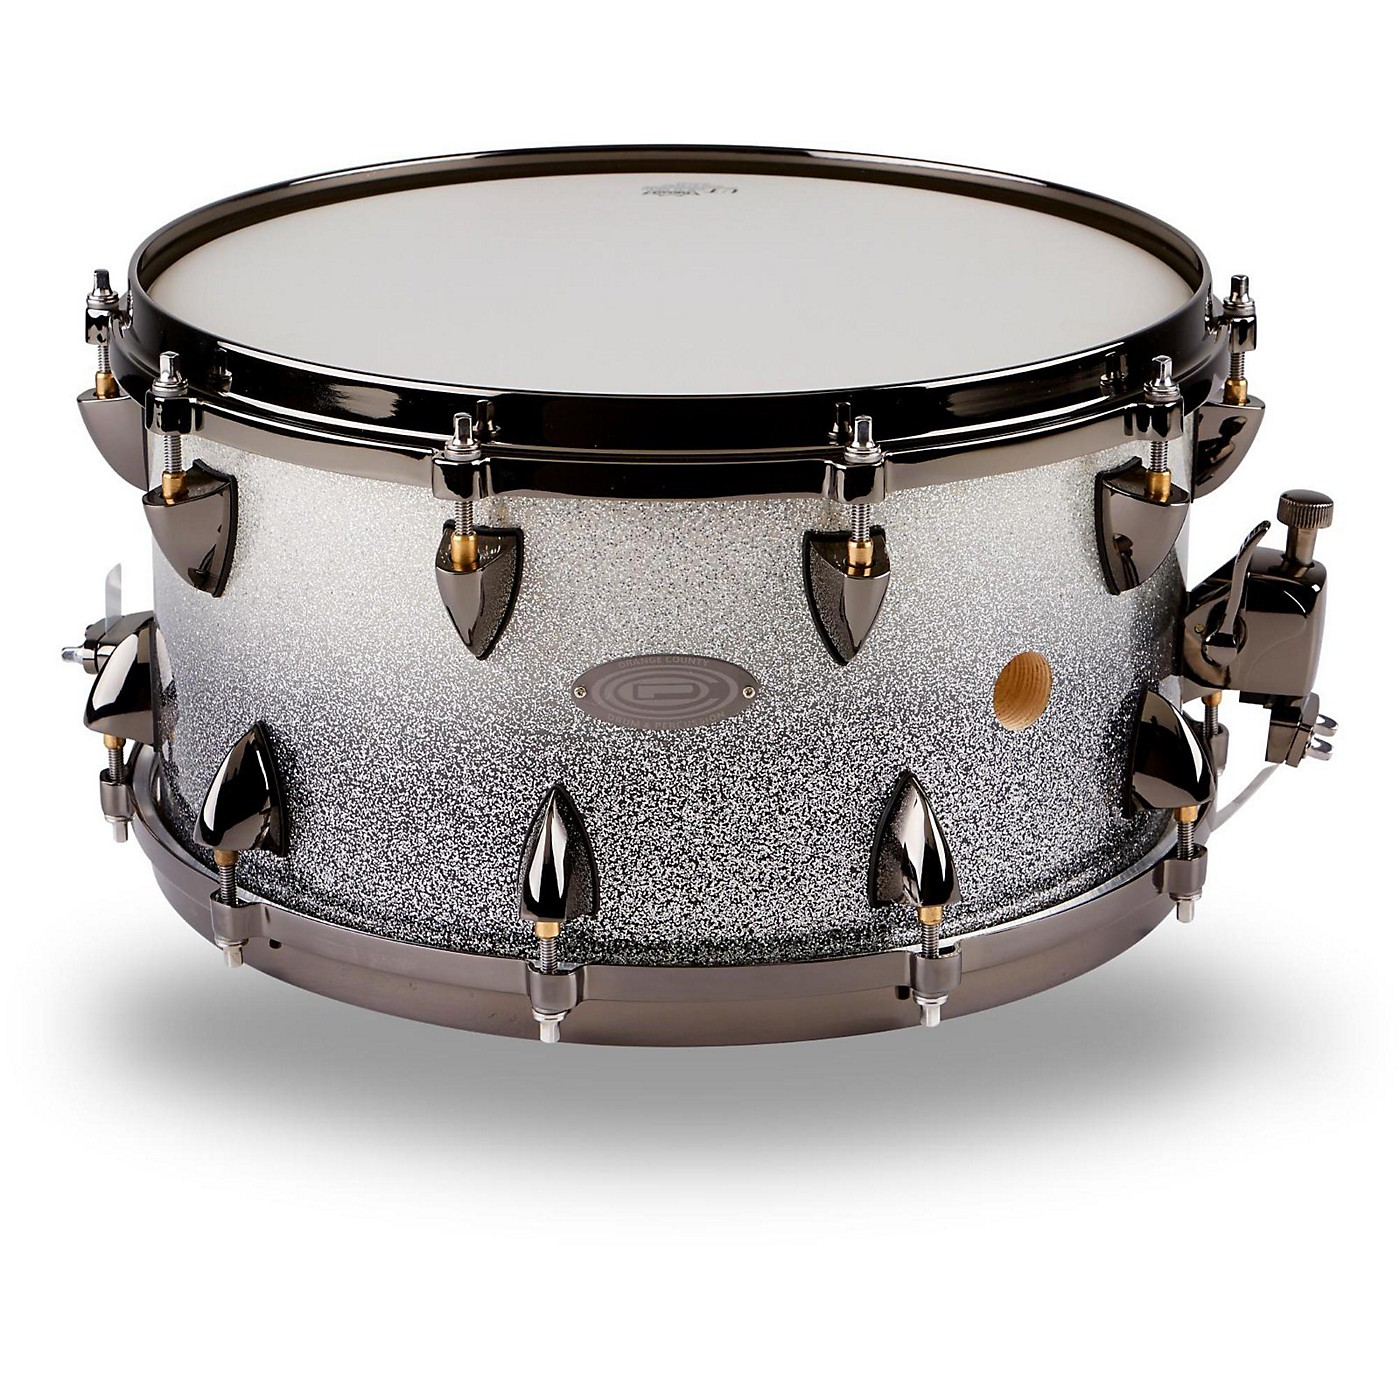 Orange County Drum & Percussion 25-Ply Maple Vented Snare Drum thumbnail